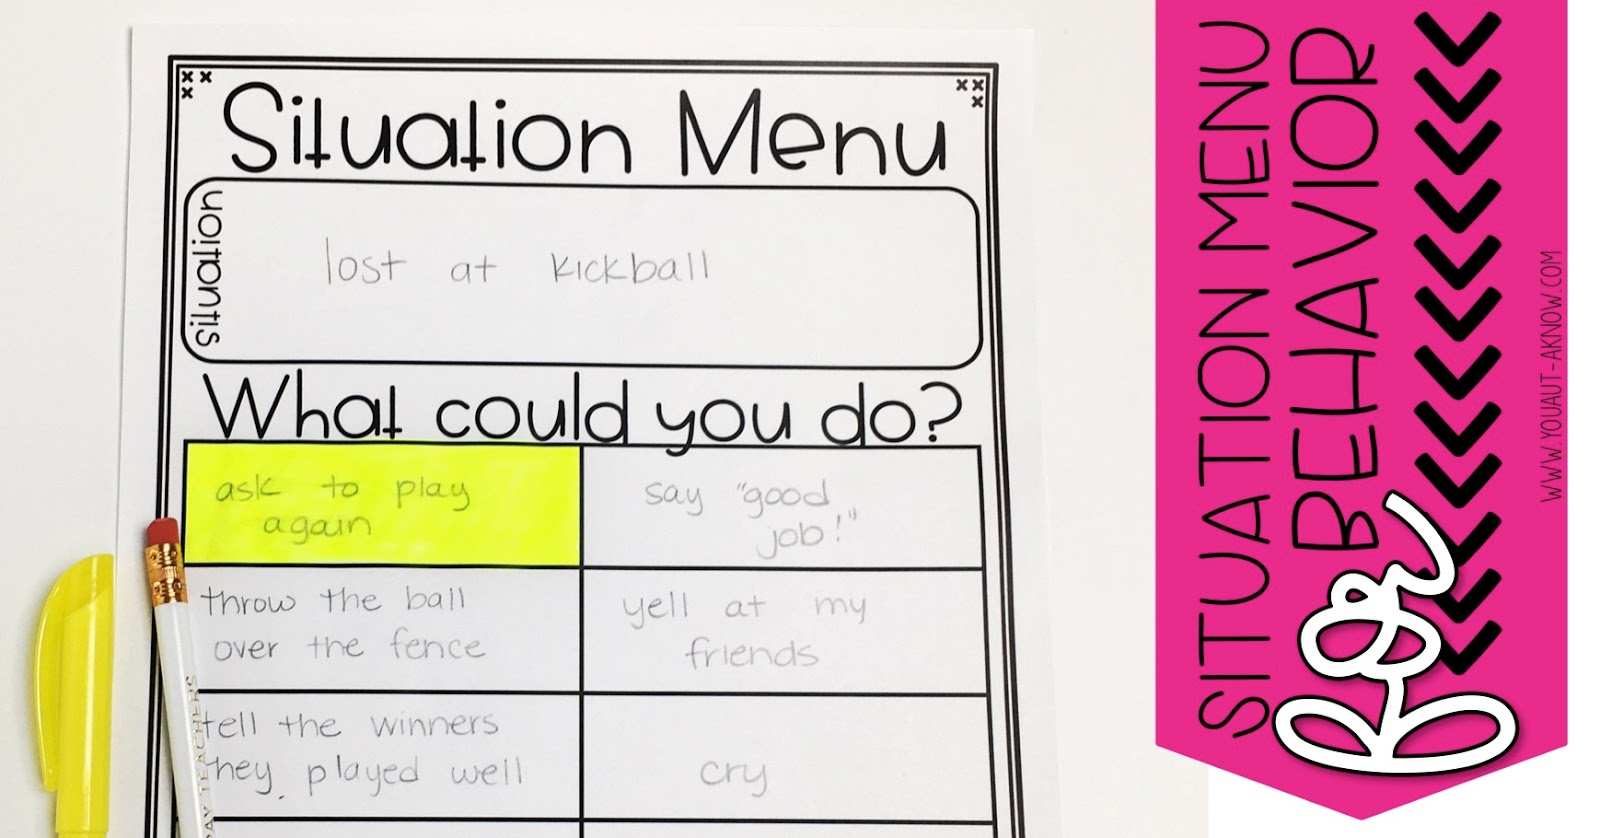 Situation menus are a graphic organizer for behavior that allows students to reflect on behavior or for teachers to proactively teach coping strategies.